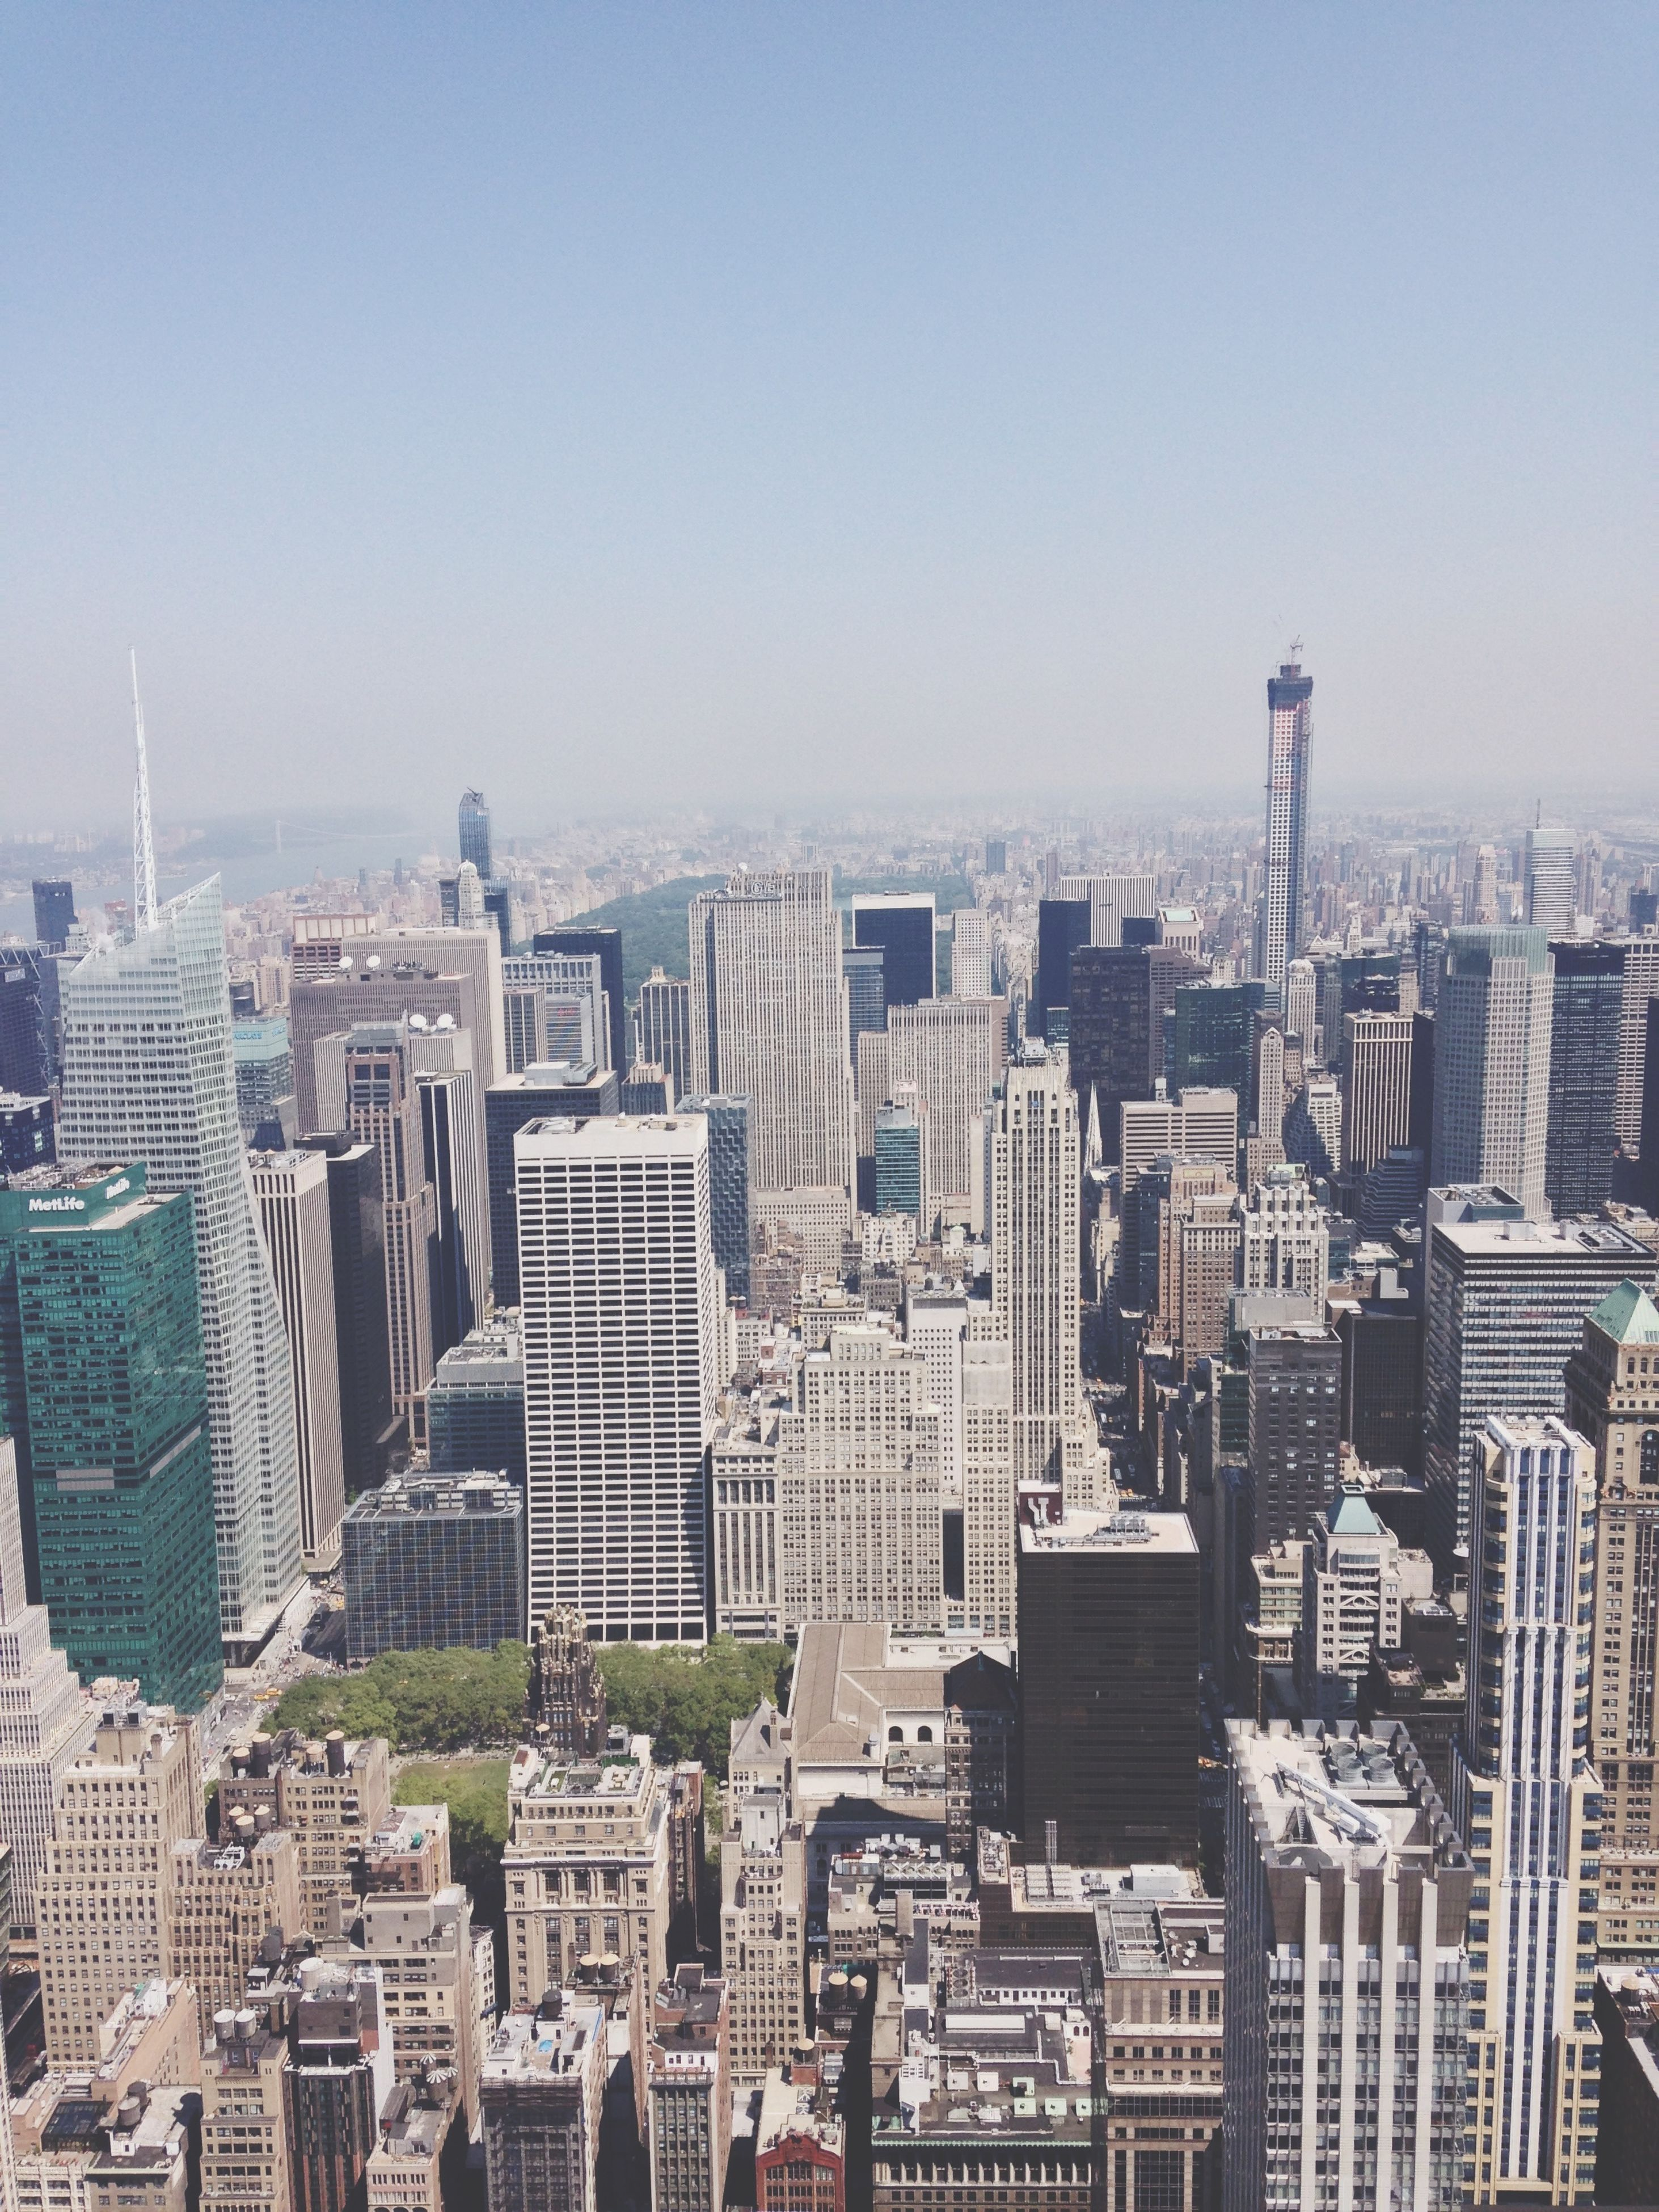 building exterior, architecture, cityscape, city, built structure, skyscraper, clear sky, tower, crowded, tall - high, copy space, office building, modern, high angle view, capital cities, residential district, urban skyline, financial district, tall, city life